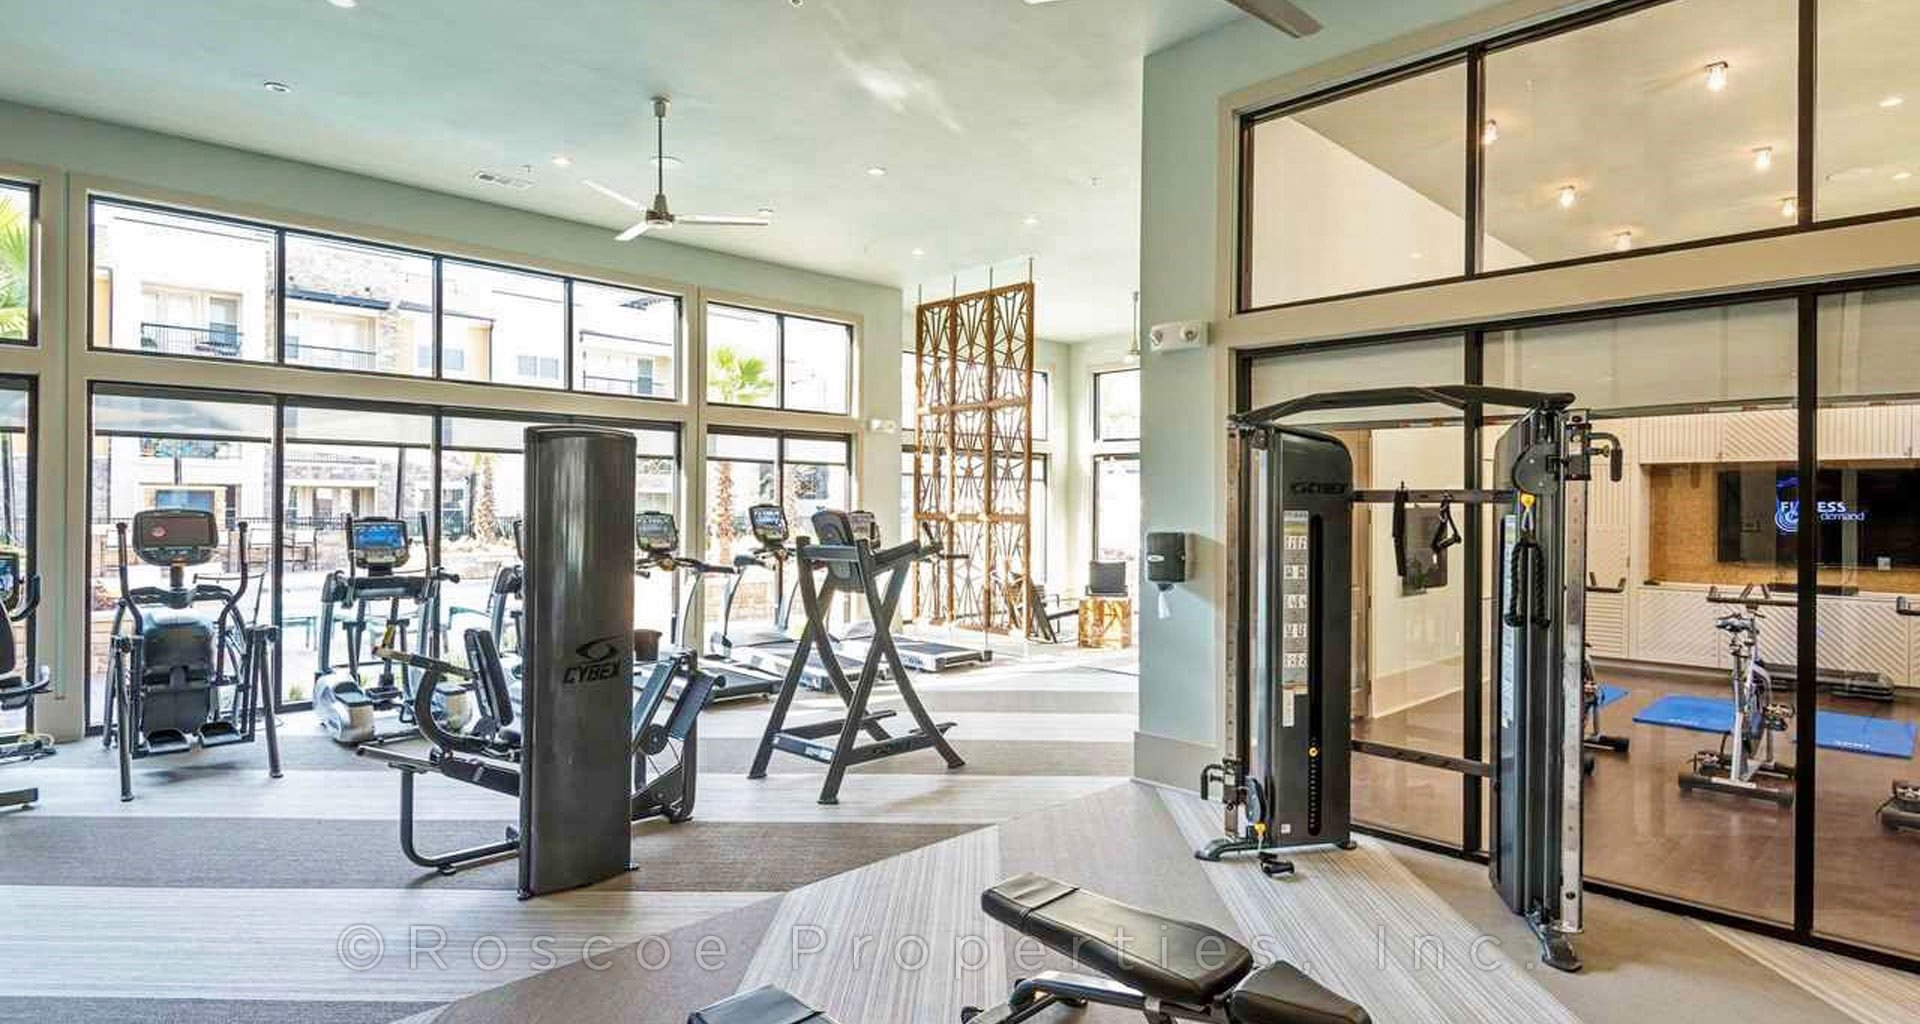 apartments_in_katy_workout_room